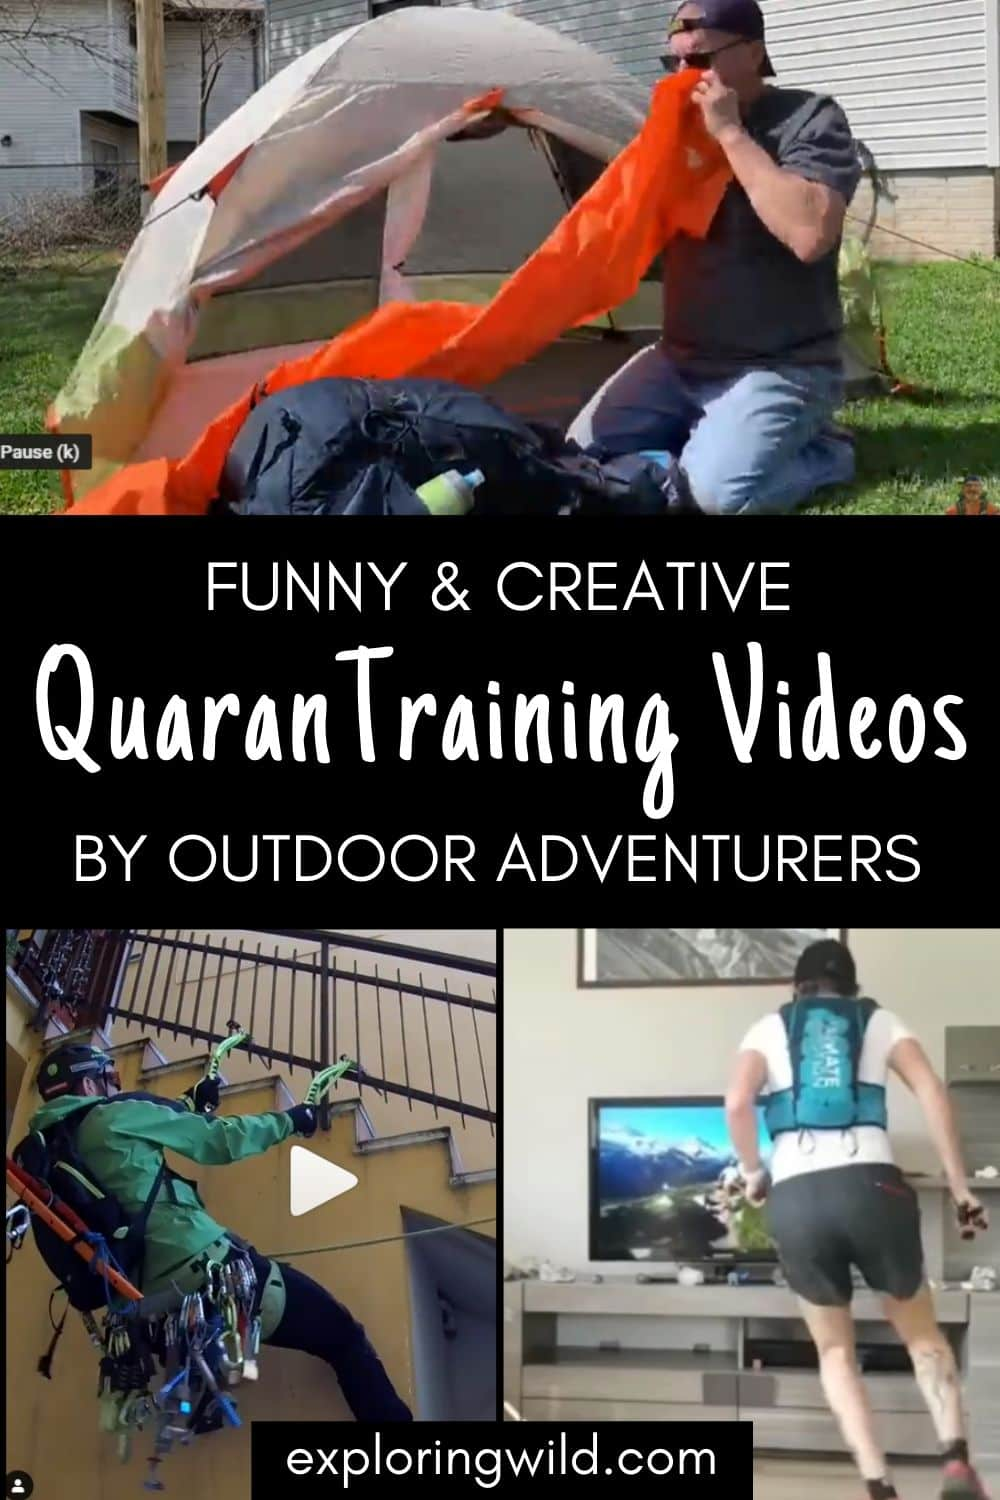 Video screen captures of outdoor athletes in home quarantine videos, with text: creative and hilarious quarantine videos for outdoor adventurers